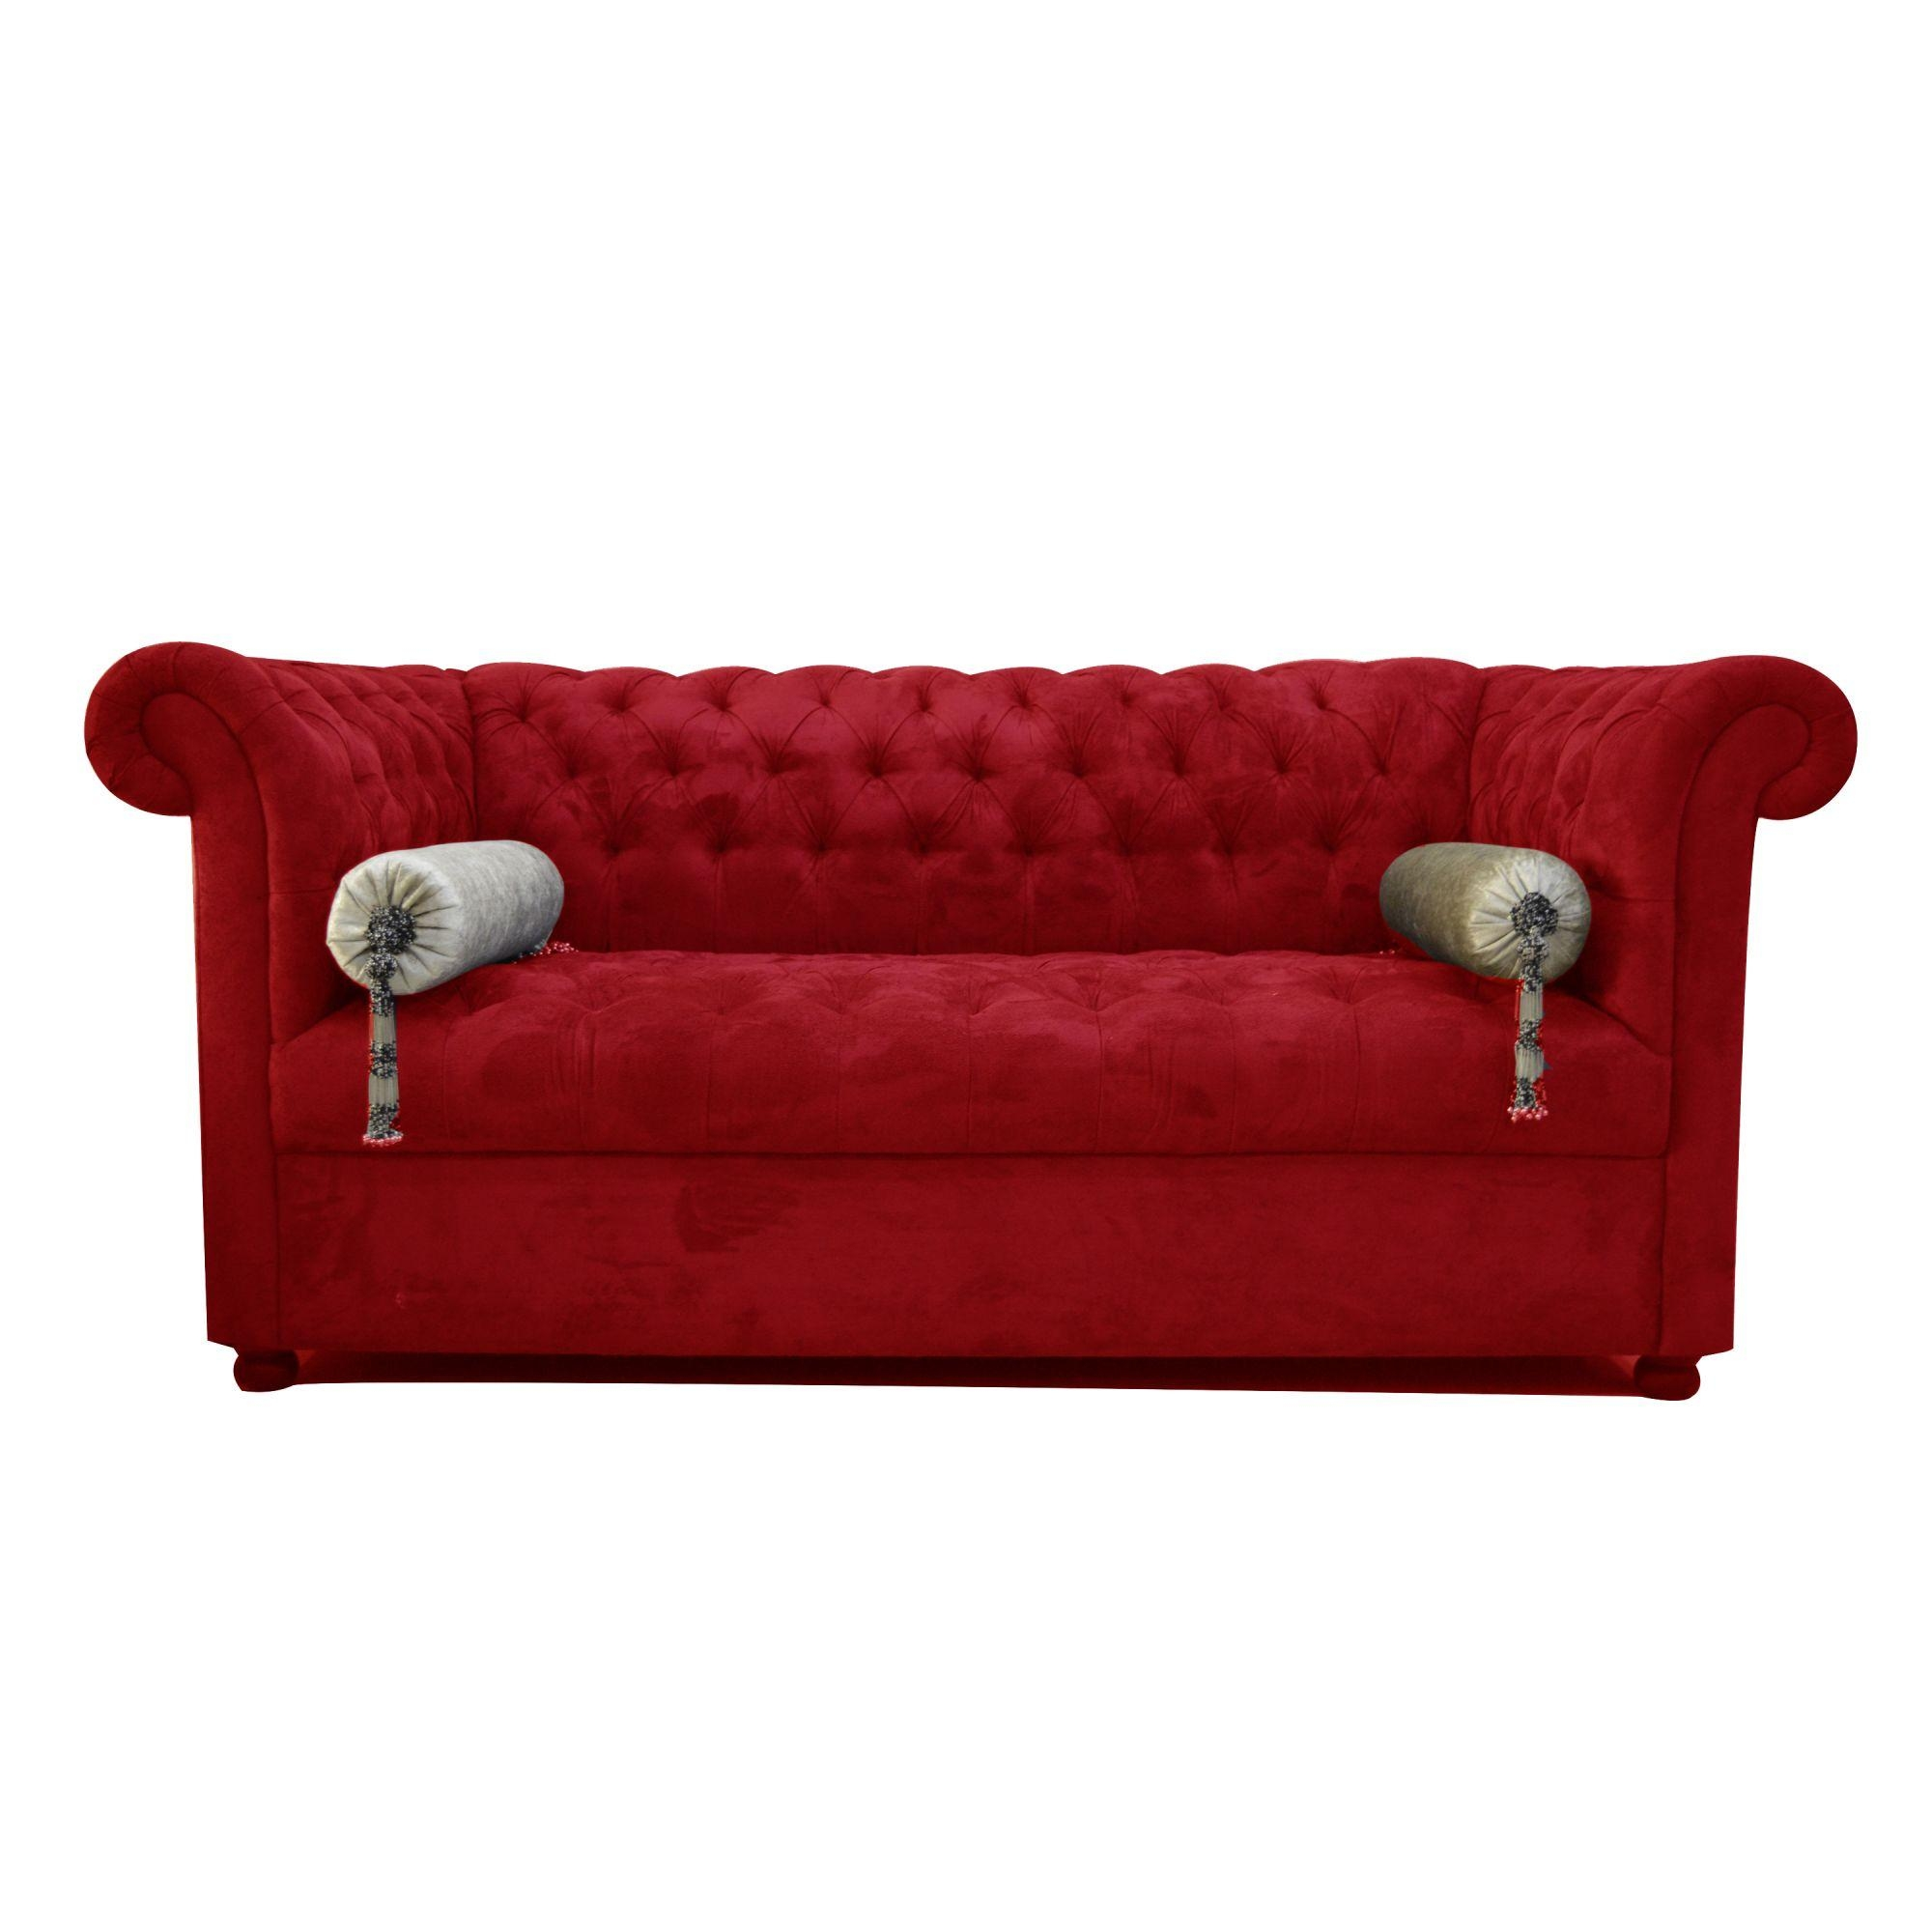 Chesterfield Sofa Bench (Cherry Red) Throughout Red Chesterfield Sofas (Image 4 of 20)